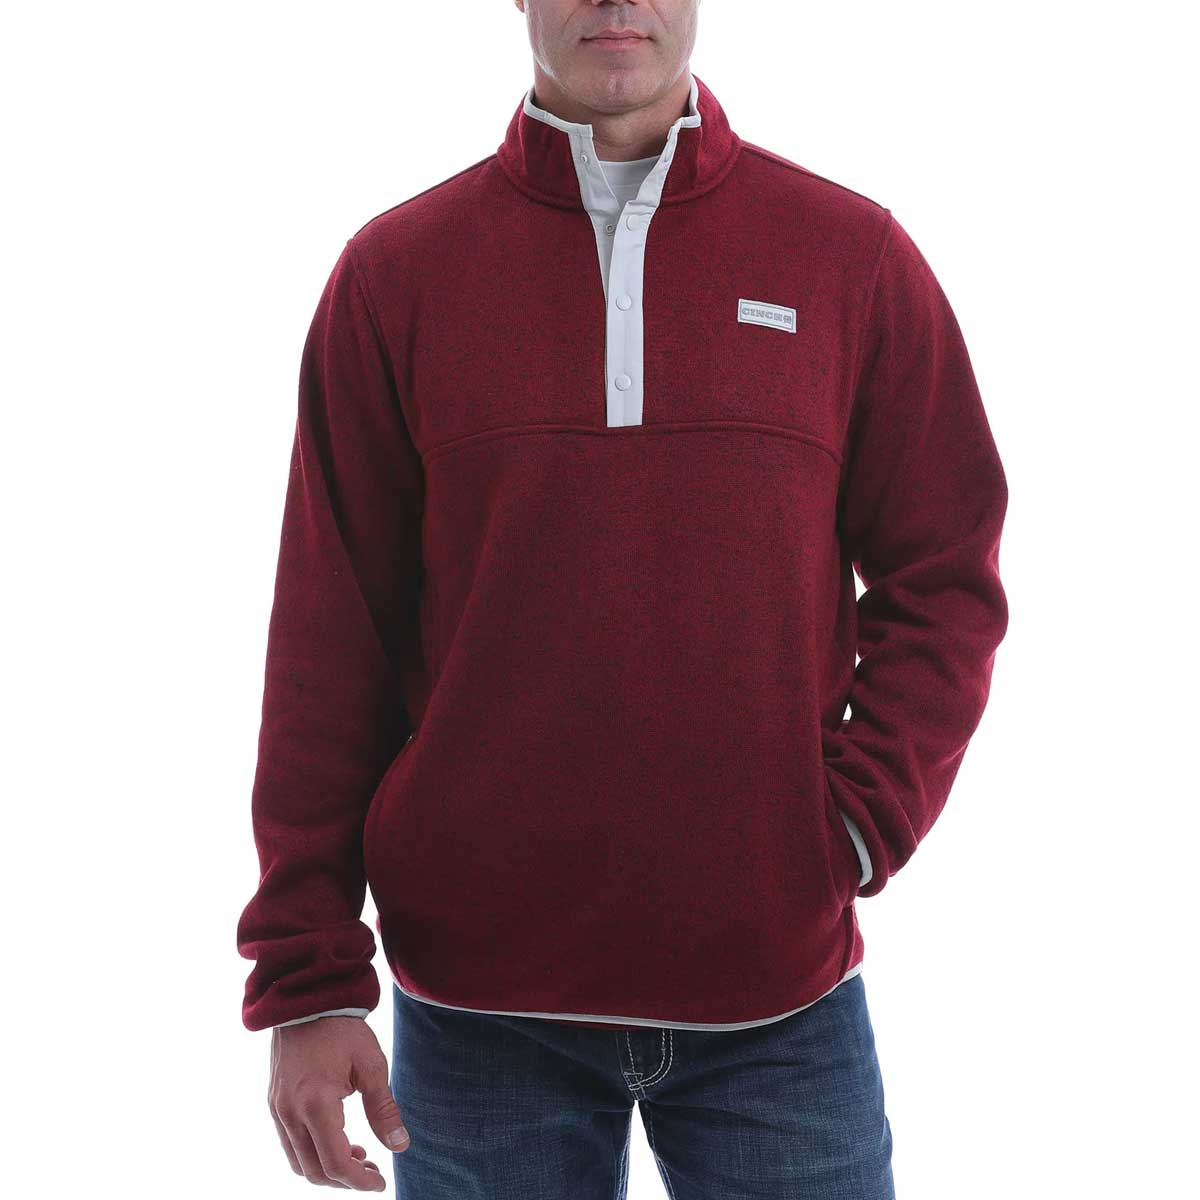 Cinch Men's 1/4 Snap Front Heavyweight Knit Pullover Sweatshirt - Burgundy